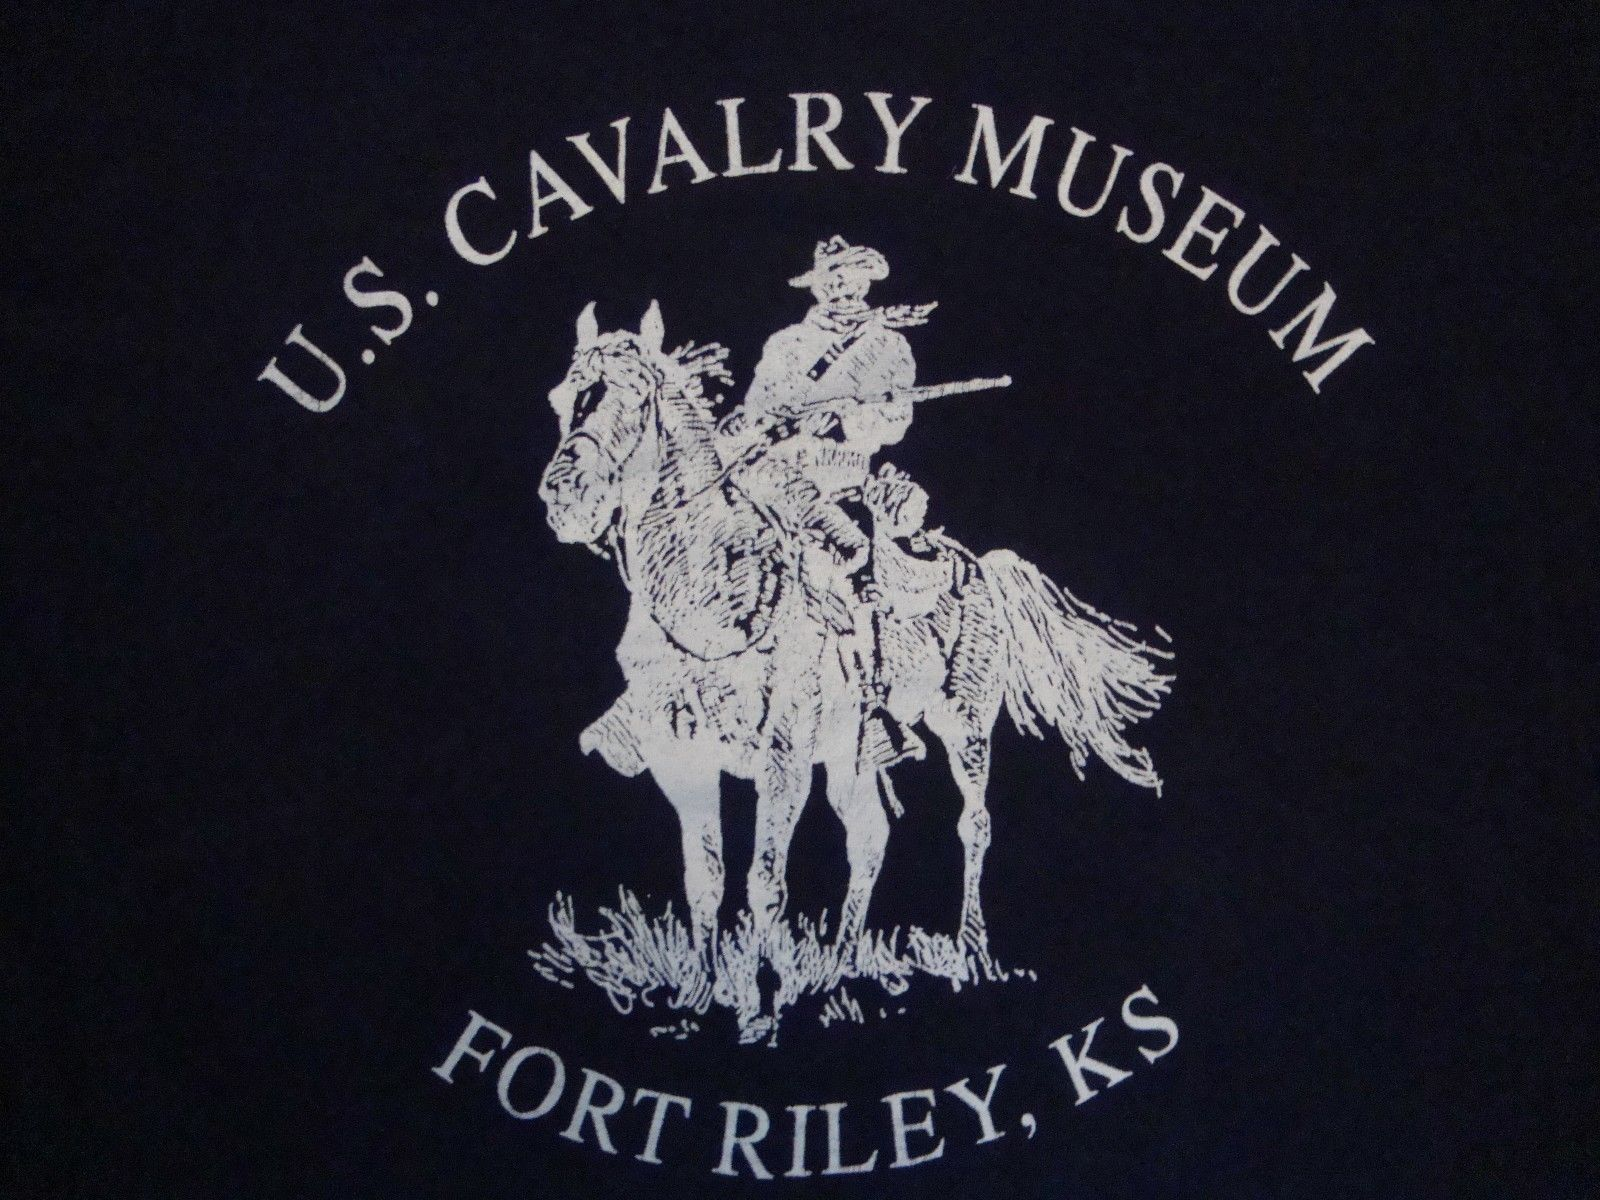 Primary image for Vintage U.S. Cavalry Museum Fort Riley Kansas Blue T Shirt Size M